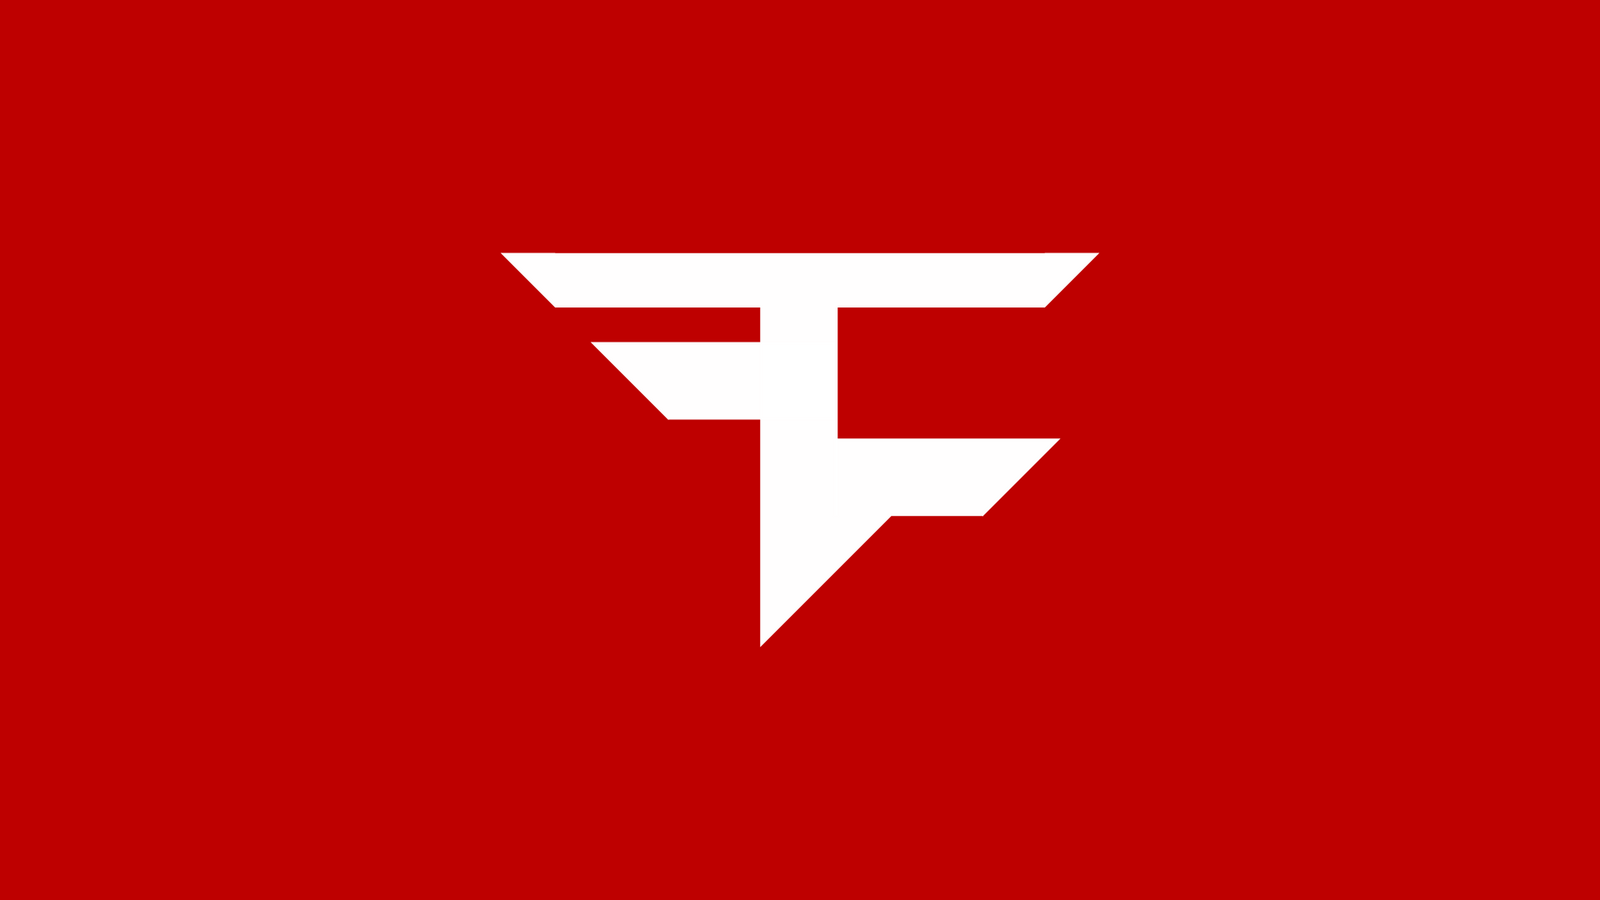 Faze Clan Wallpaper Wall Giftwatches Co